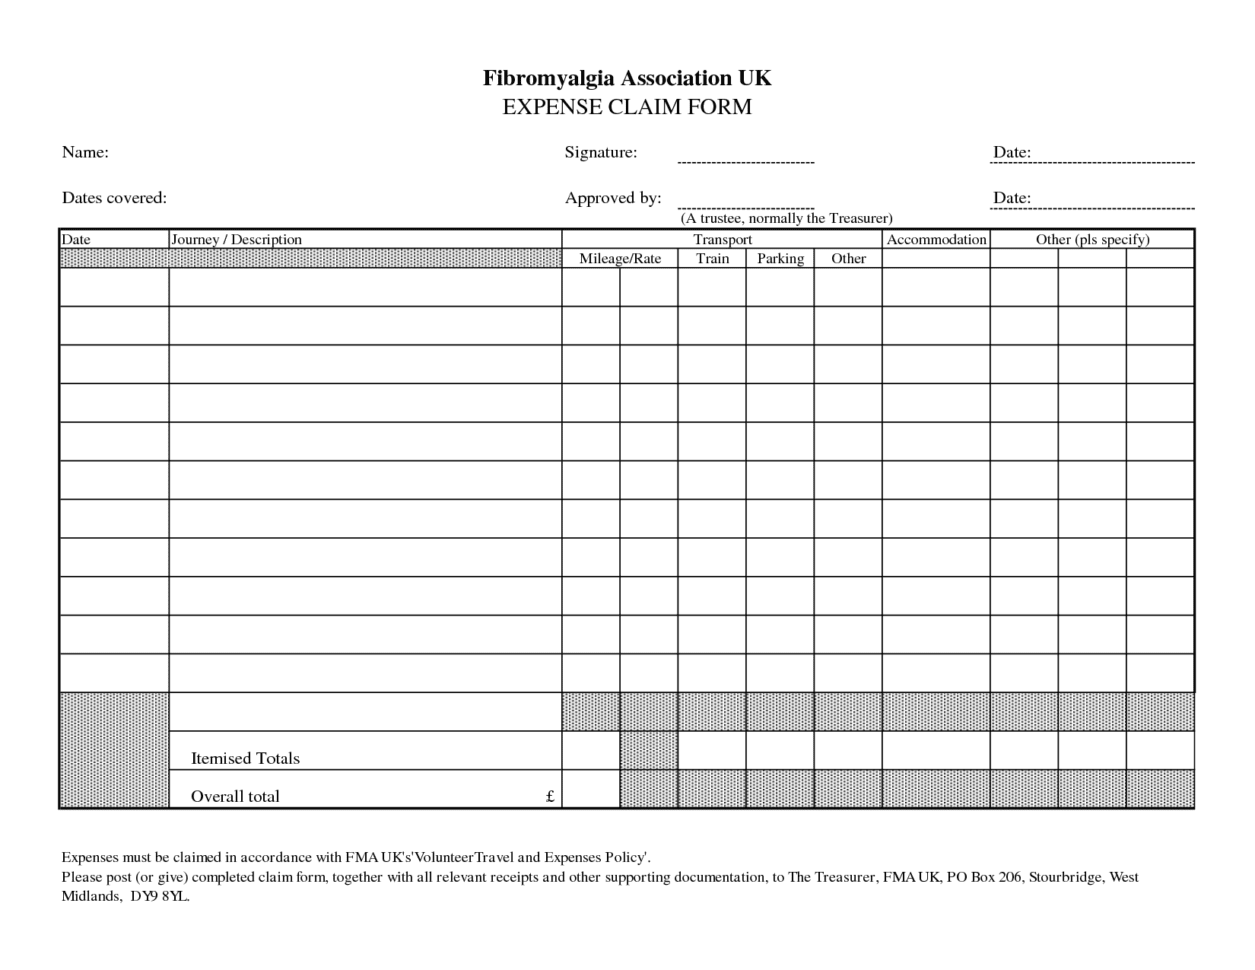 Small Business Spreadsheet For Income And Expenses Accounting Spreadsheets Free Free Printable 6 Column Sheets Small Business Bookkeeping Template Free Excel Accounting Templates Download Accounting Journal Template Excel Microsoft Excel Accounting Templates Download  Bookkeeping Spreadsheet Using Microsoft Excel Accounting Spreadsheet Template Spreadsheet Templates for Busines